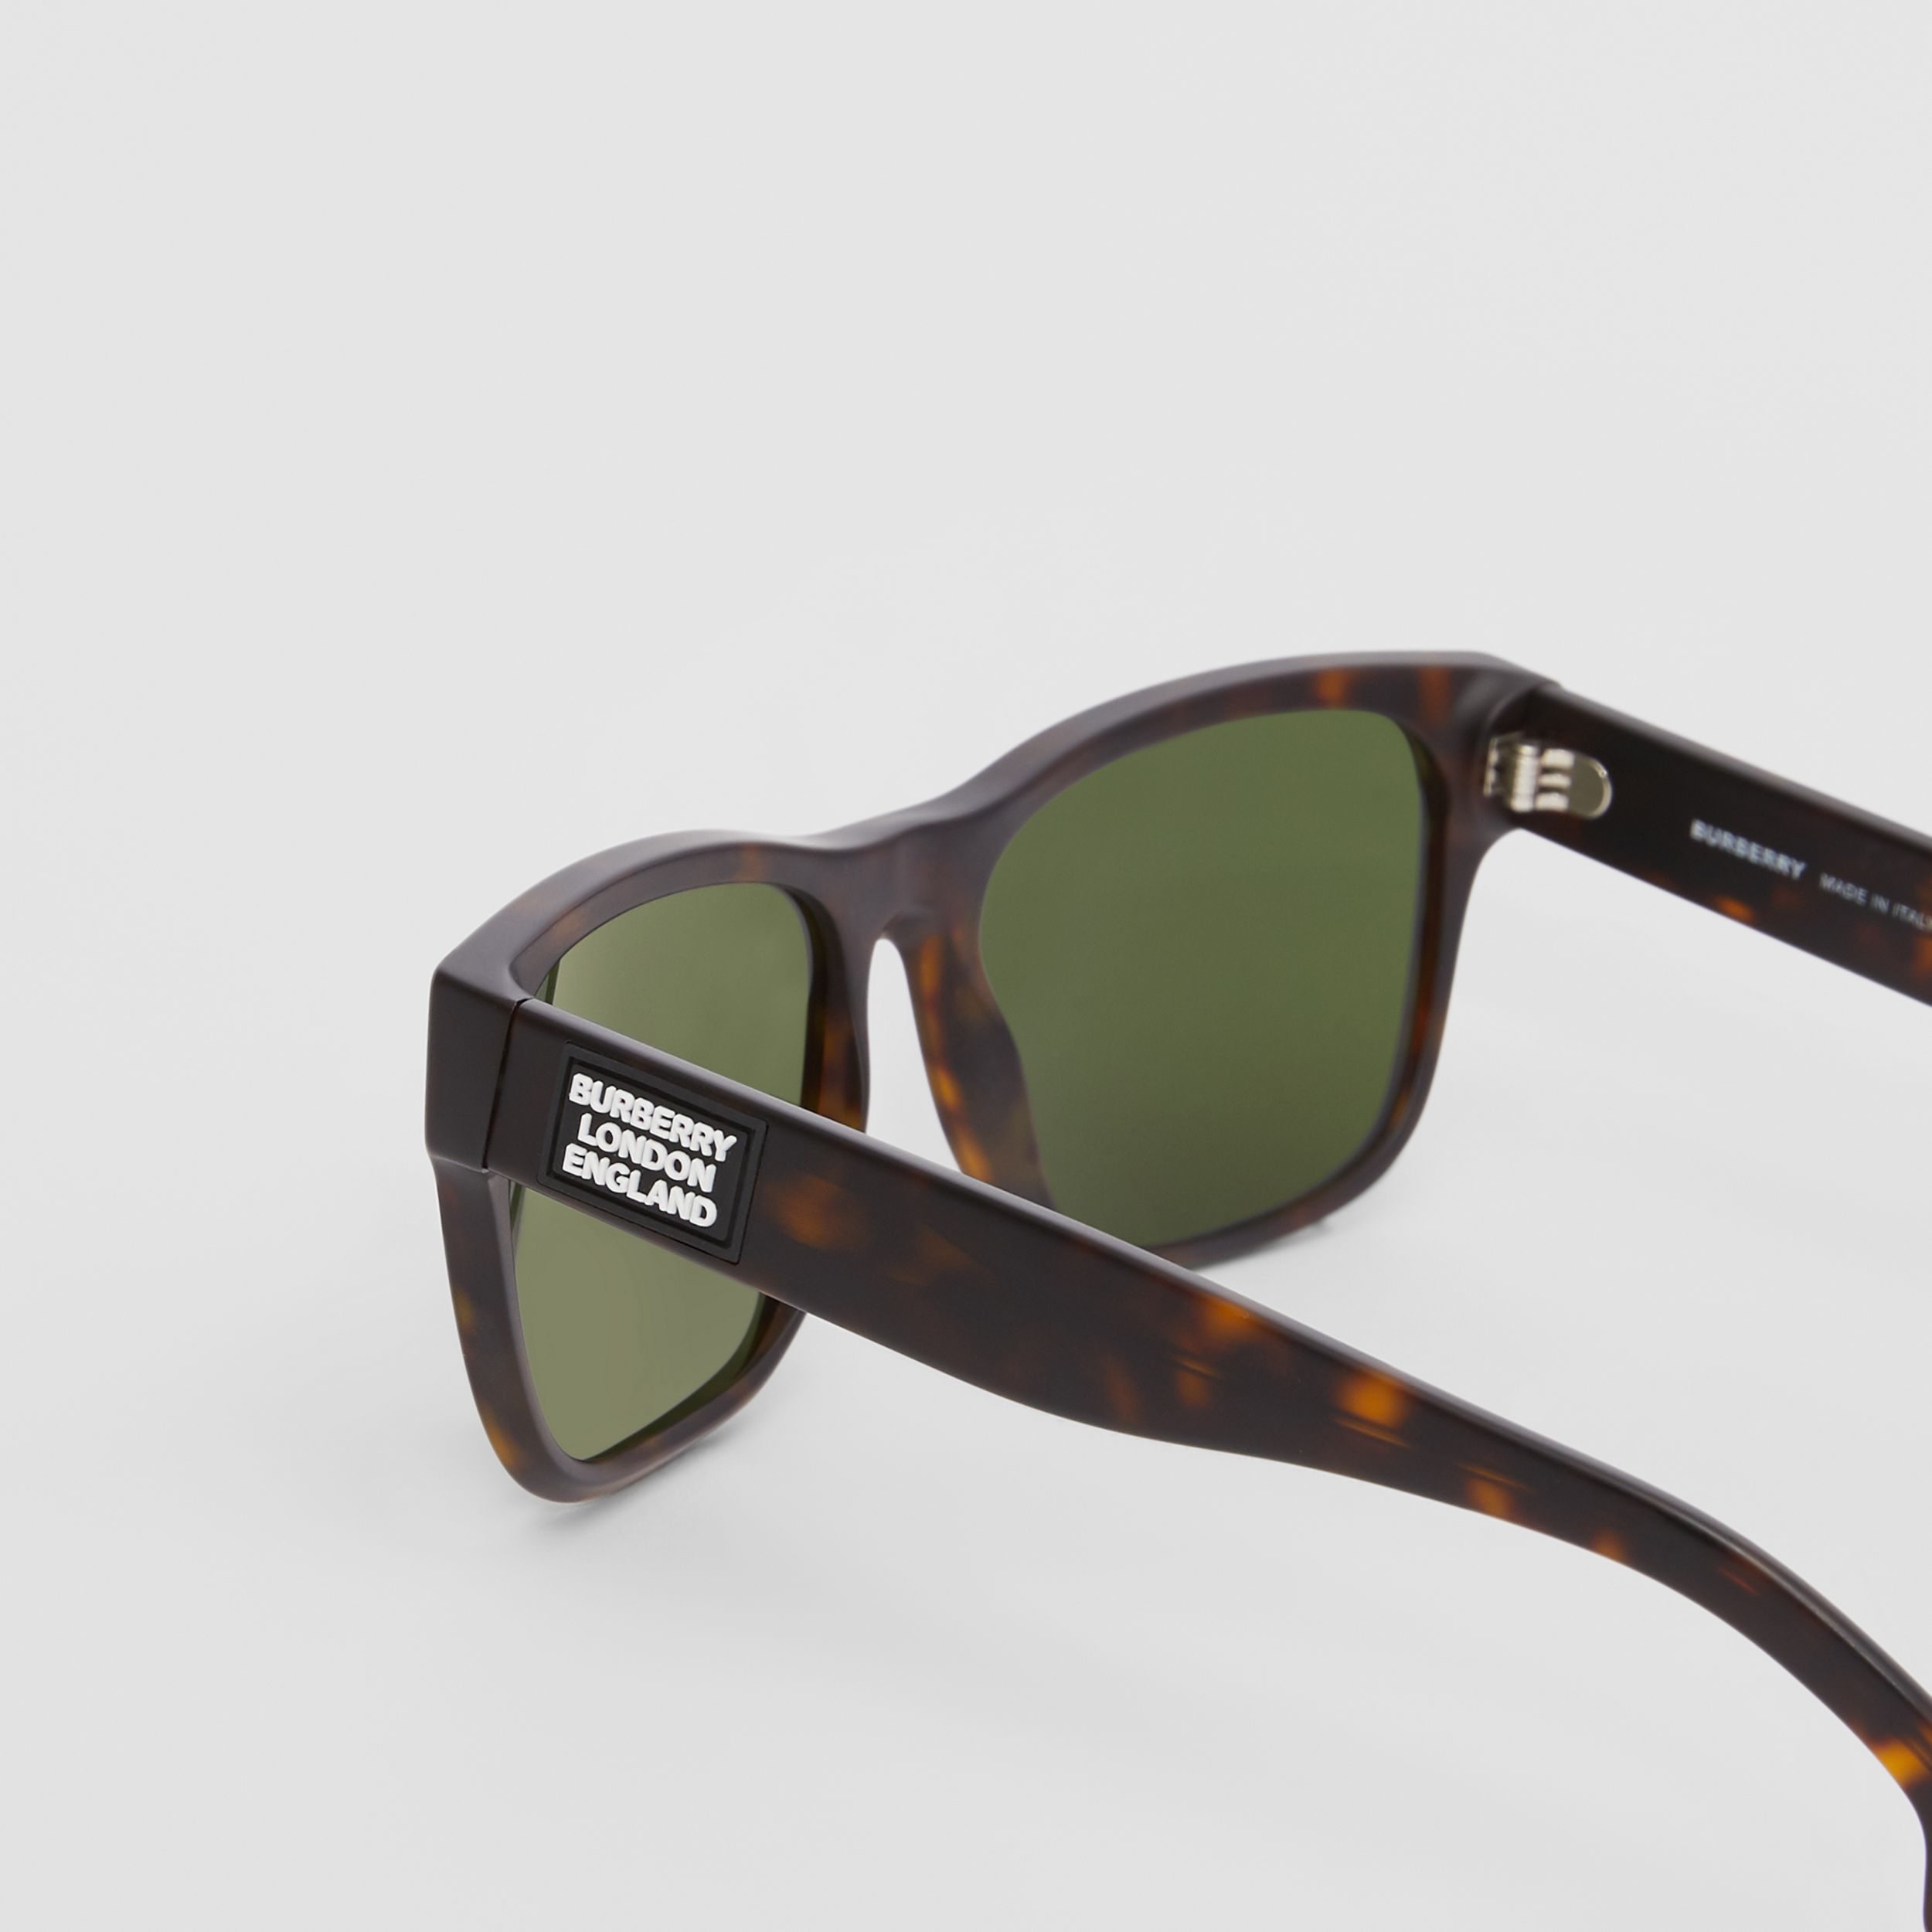 Logo Appliqué Square Frame Sunglasses in Tortoiseshell - Men | Burberry - 2